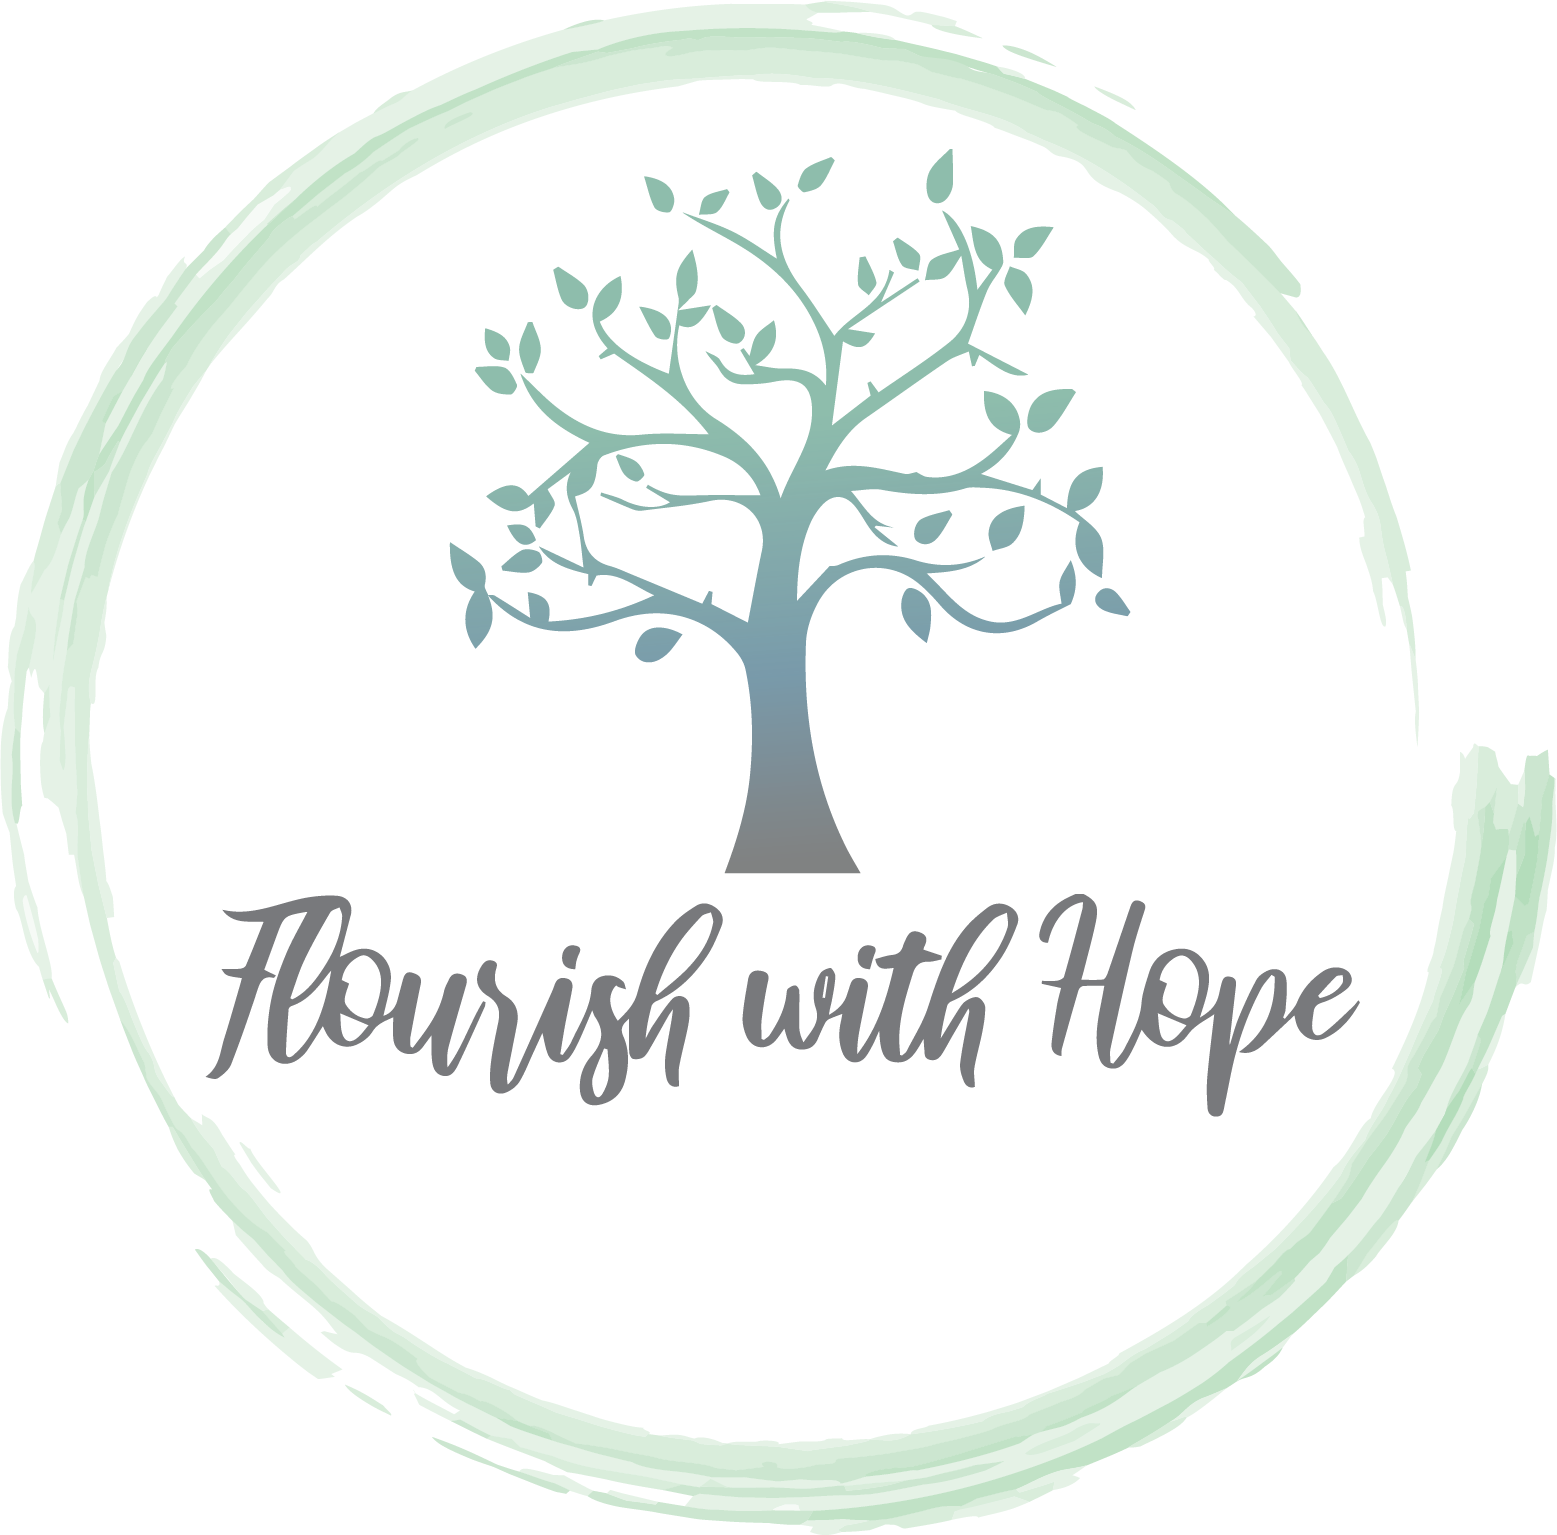 Flourish with Hope